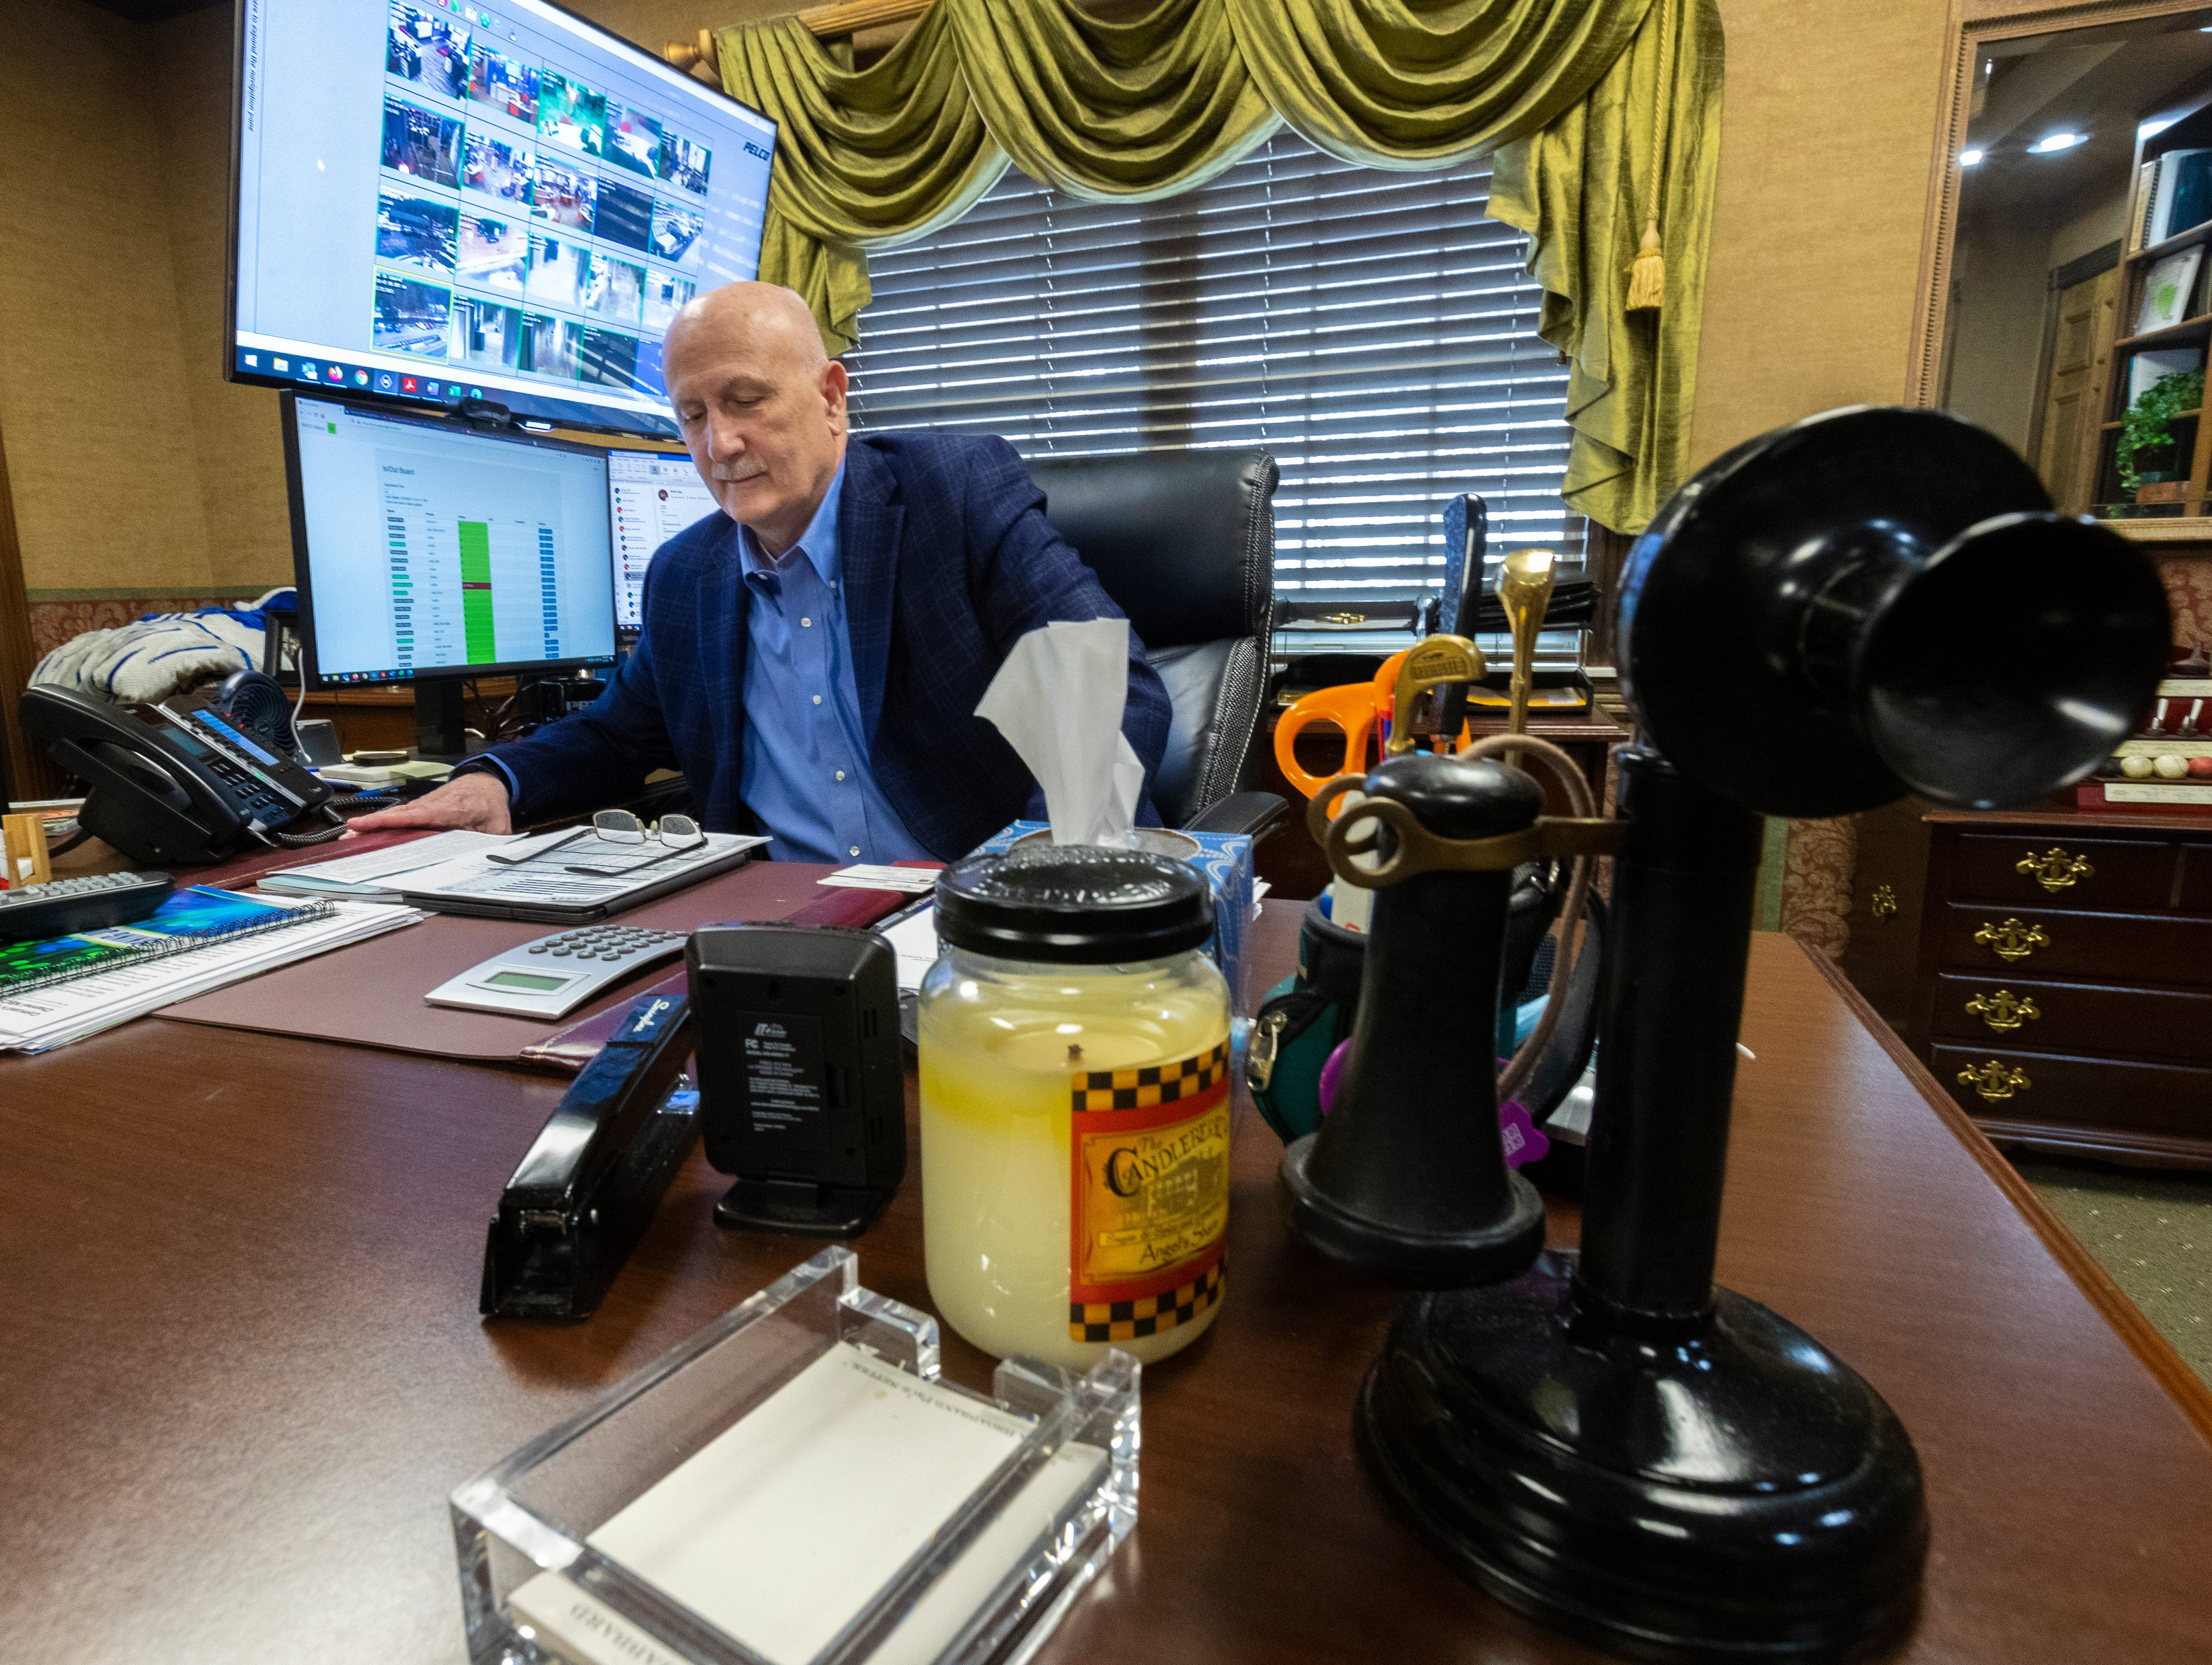 Keith Gabbard, CEO of People's Rural Telephone Cooperative, was largely responsible for bringing high-speed internet service to Jackson County, Kentucky. It's supported work-from-home jobs for Apple and other Fortune-500 companies.